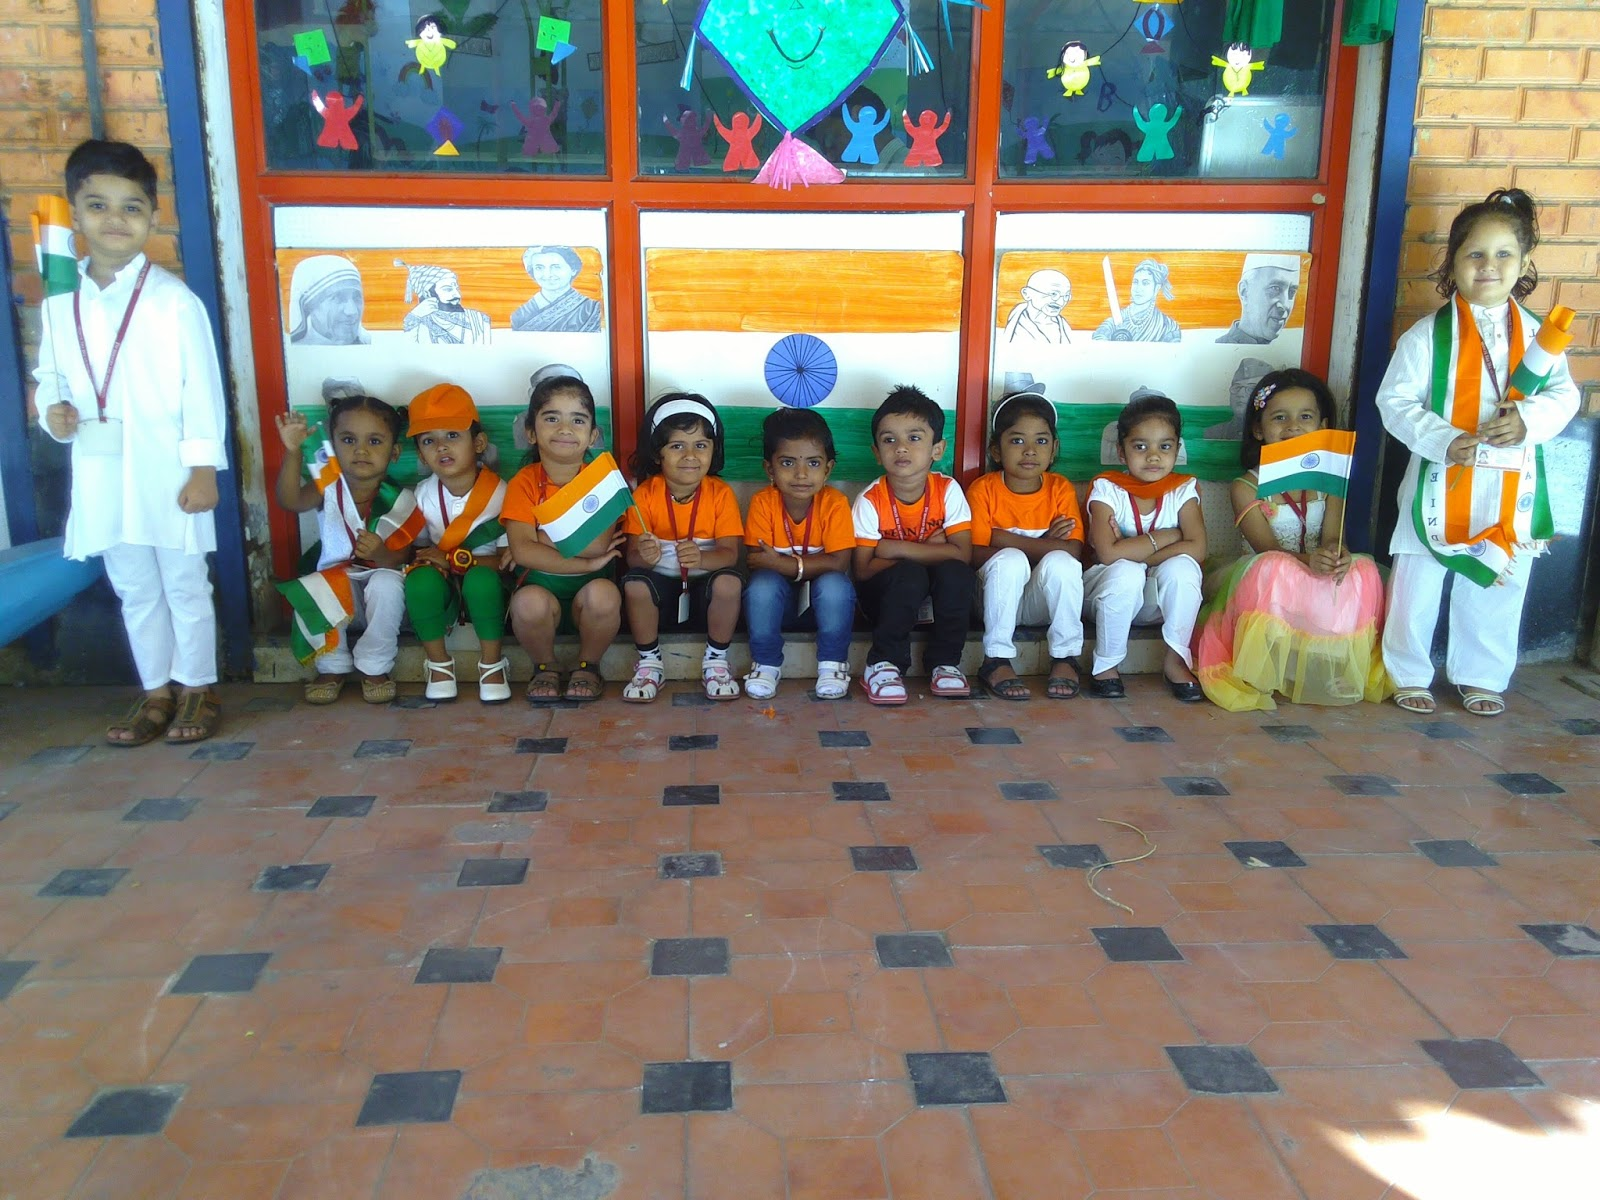 Tricolour dress for republic day pictures